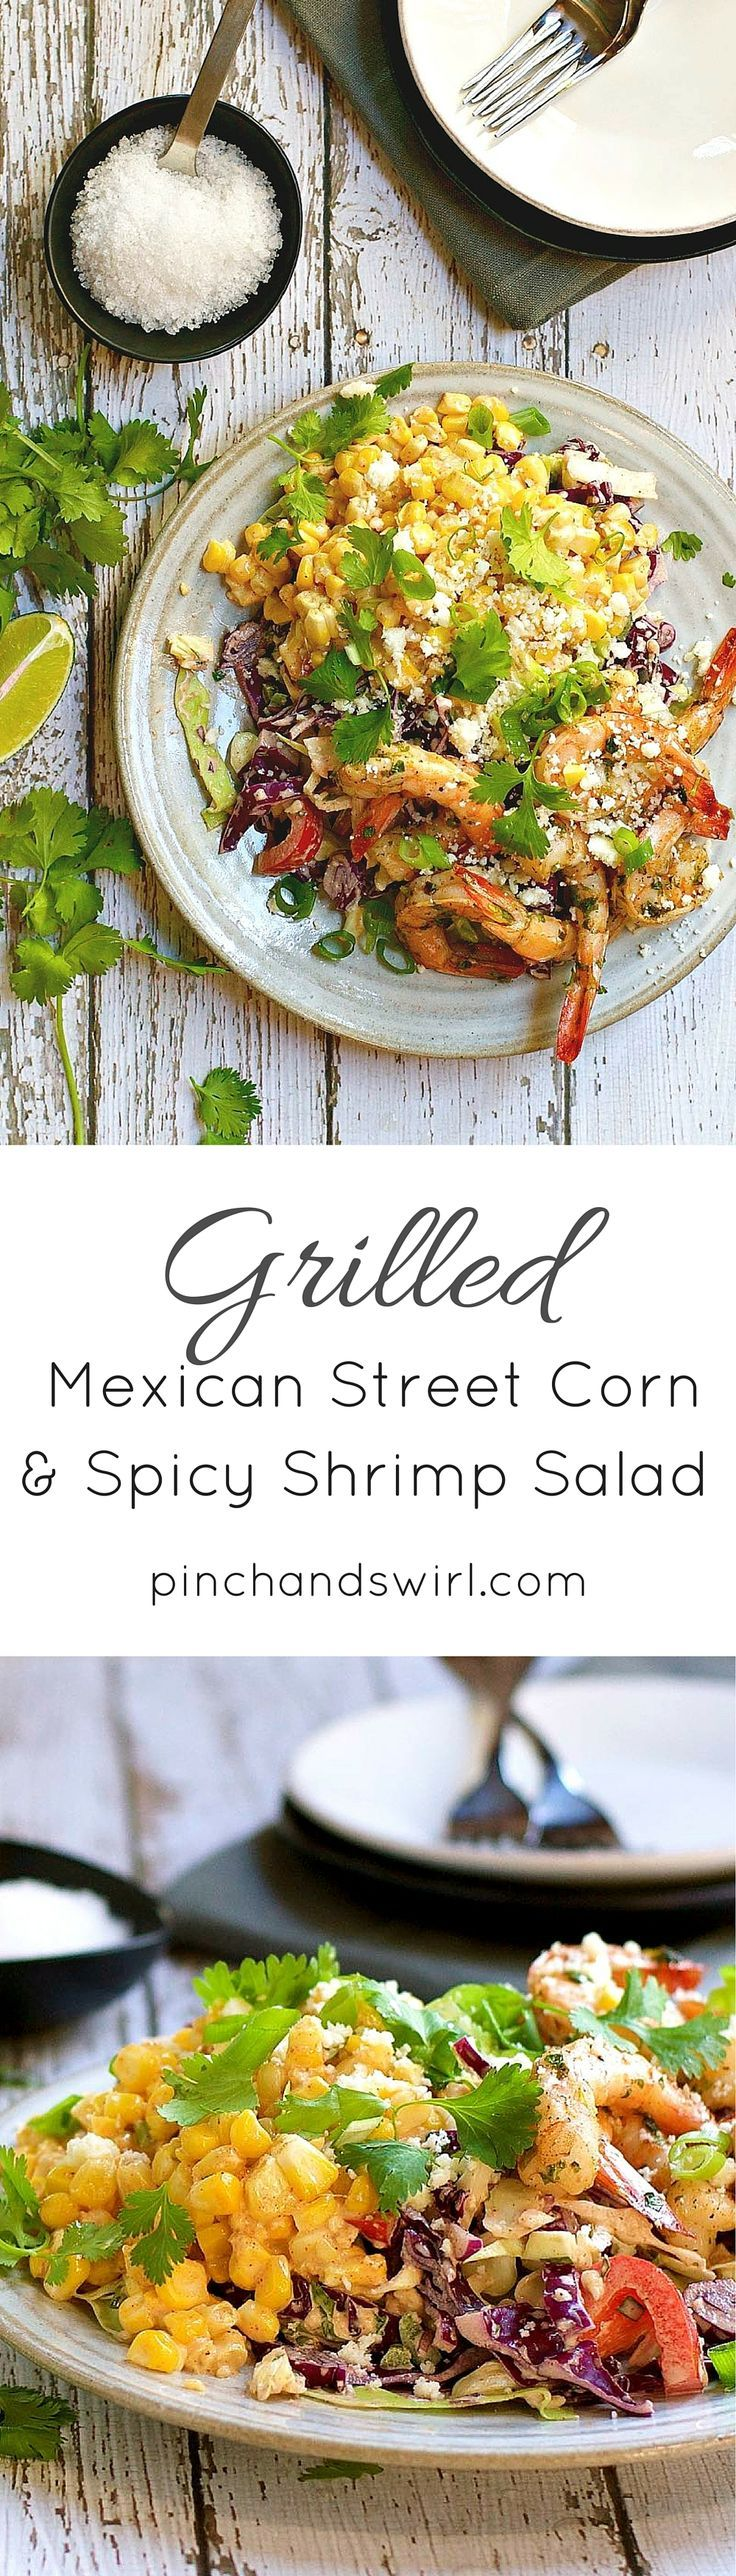 Easy Grilled Mexican Street Corn and Spicy Shrimp Salad - Like summer vacation on a plate! #corn #easyrecipes #summer #cornonthecob #salad #healthyrecipes